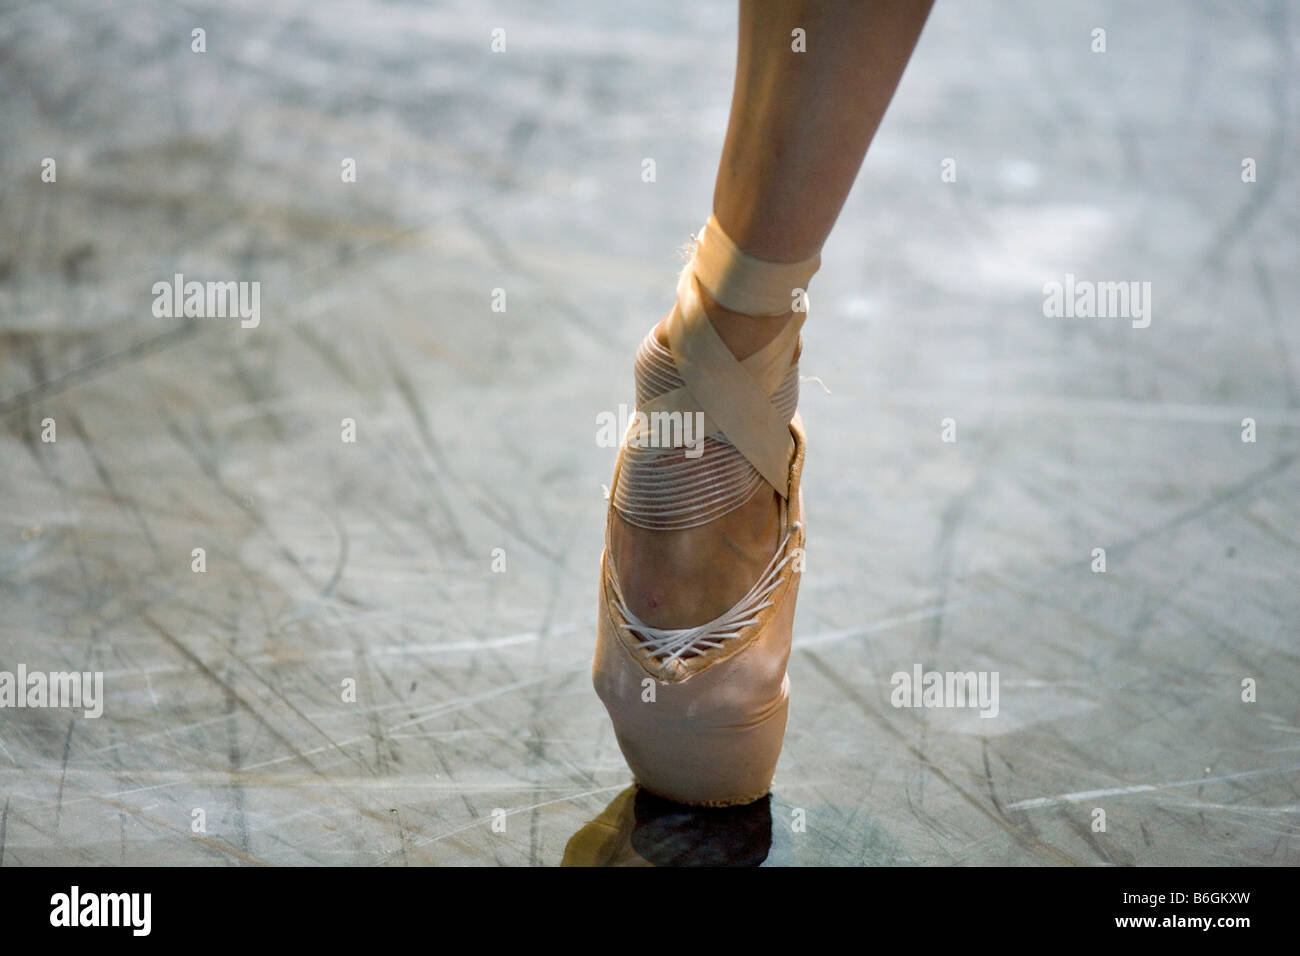 A ballet dancer from the English National Opera on pointe - Stock Image